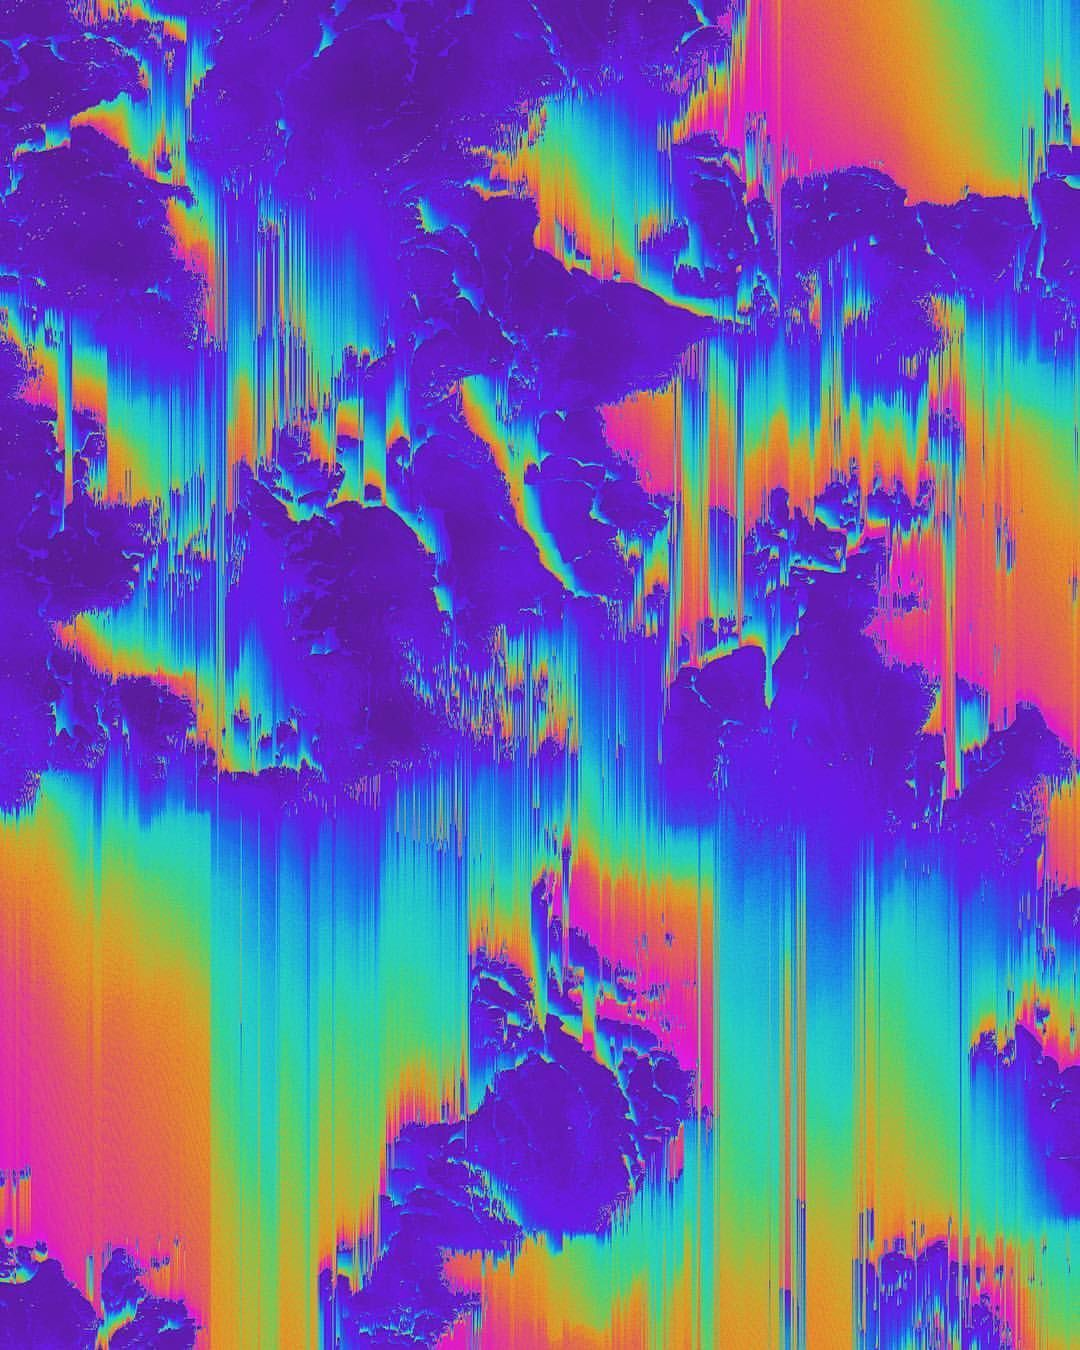 Trippy Aesthetic Wallpapers Top Free Trippy Aesthetic